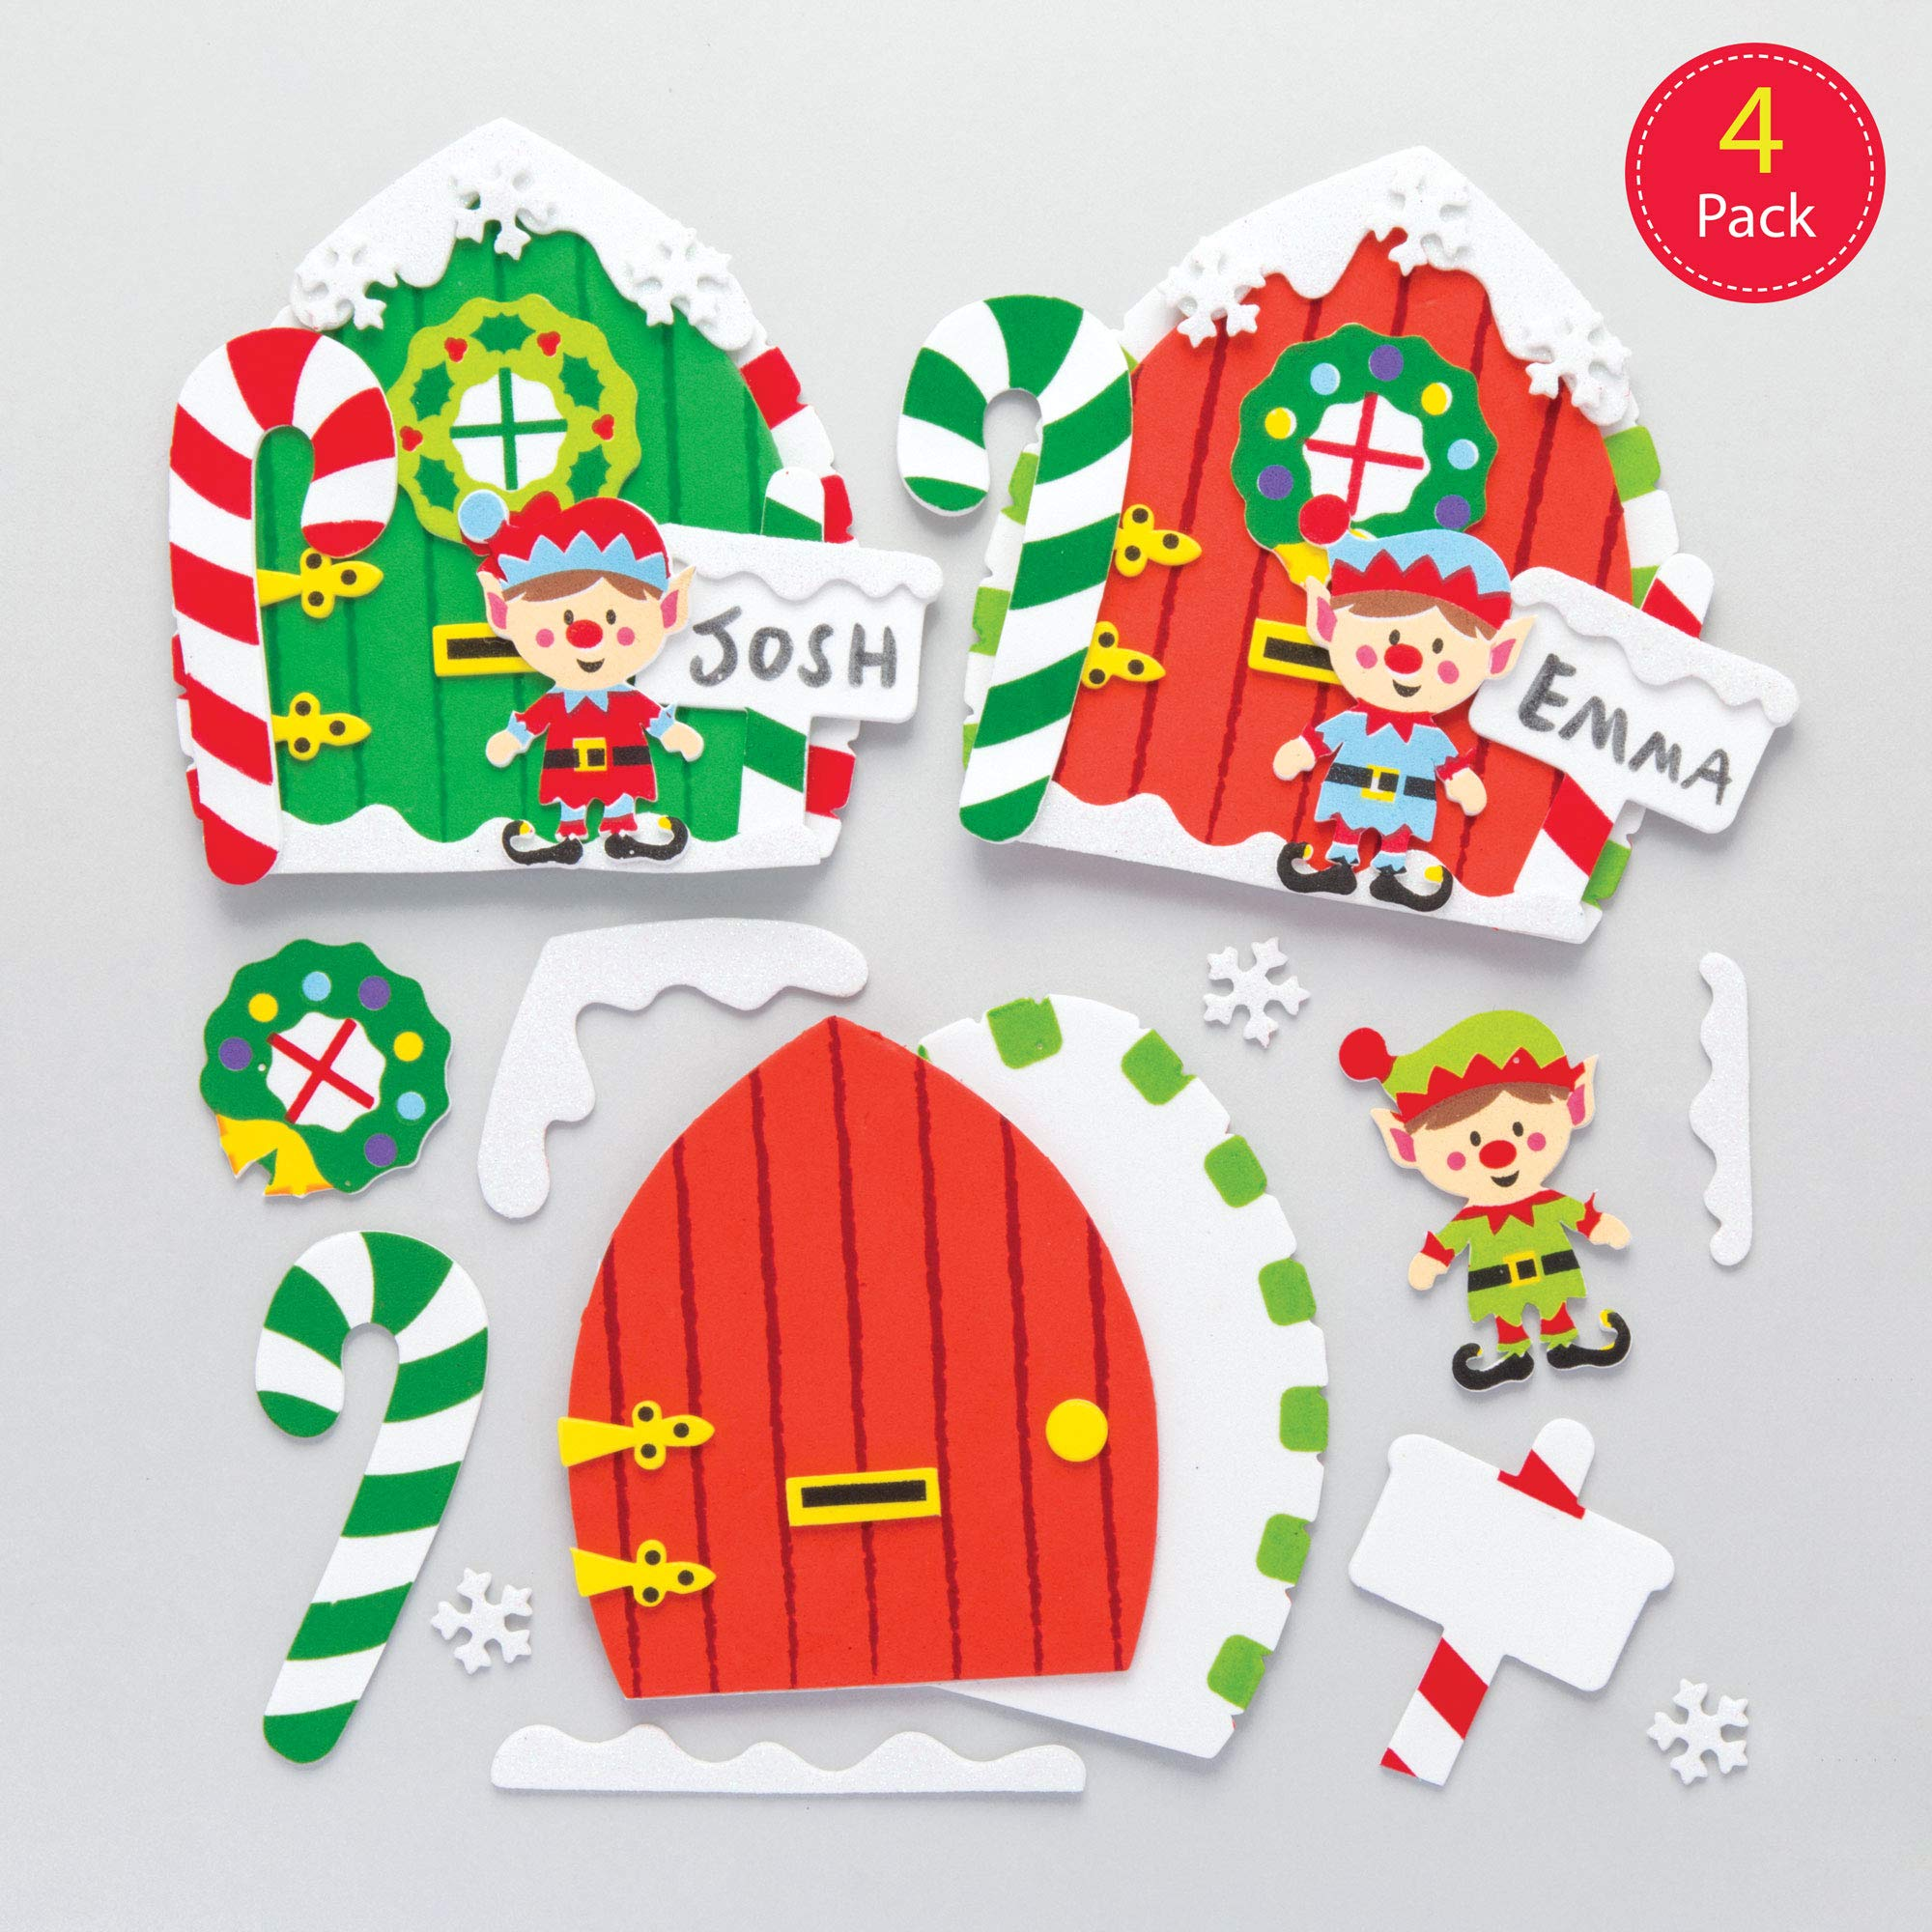 Baker Ross Foam Christmas Elf Door Kits — Creative Christmas Art and Craft Supplies for Kids to Make and Decorate (Pack of 4)